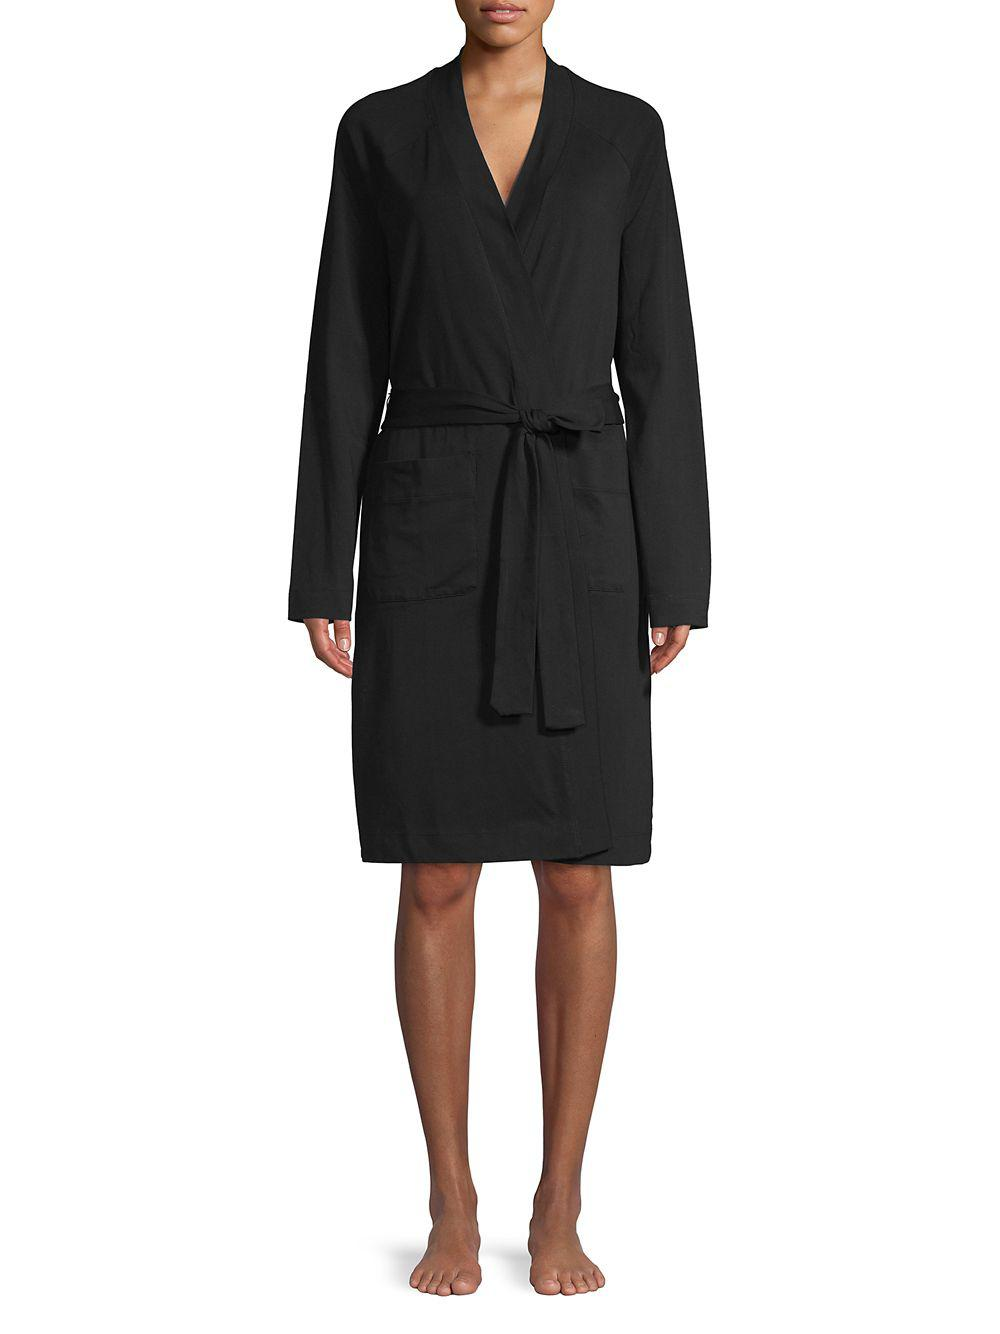 dbaf1b512a203 Lord & Taylor Open-front Robe in Black - Lyst